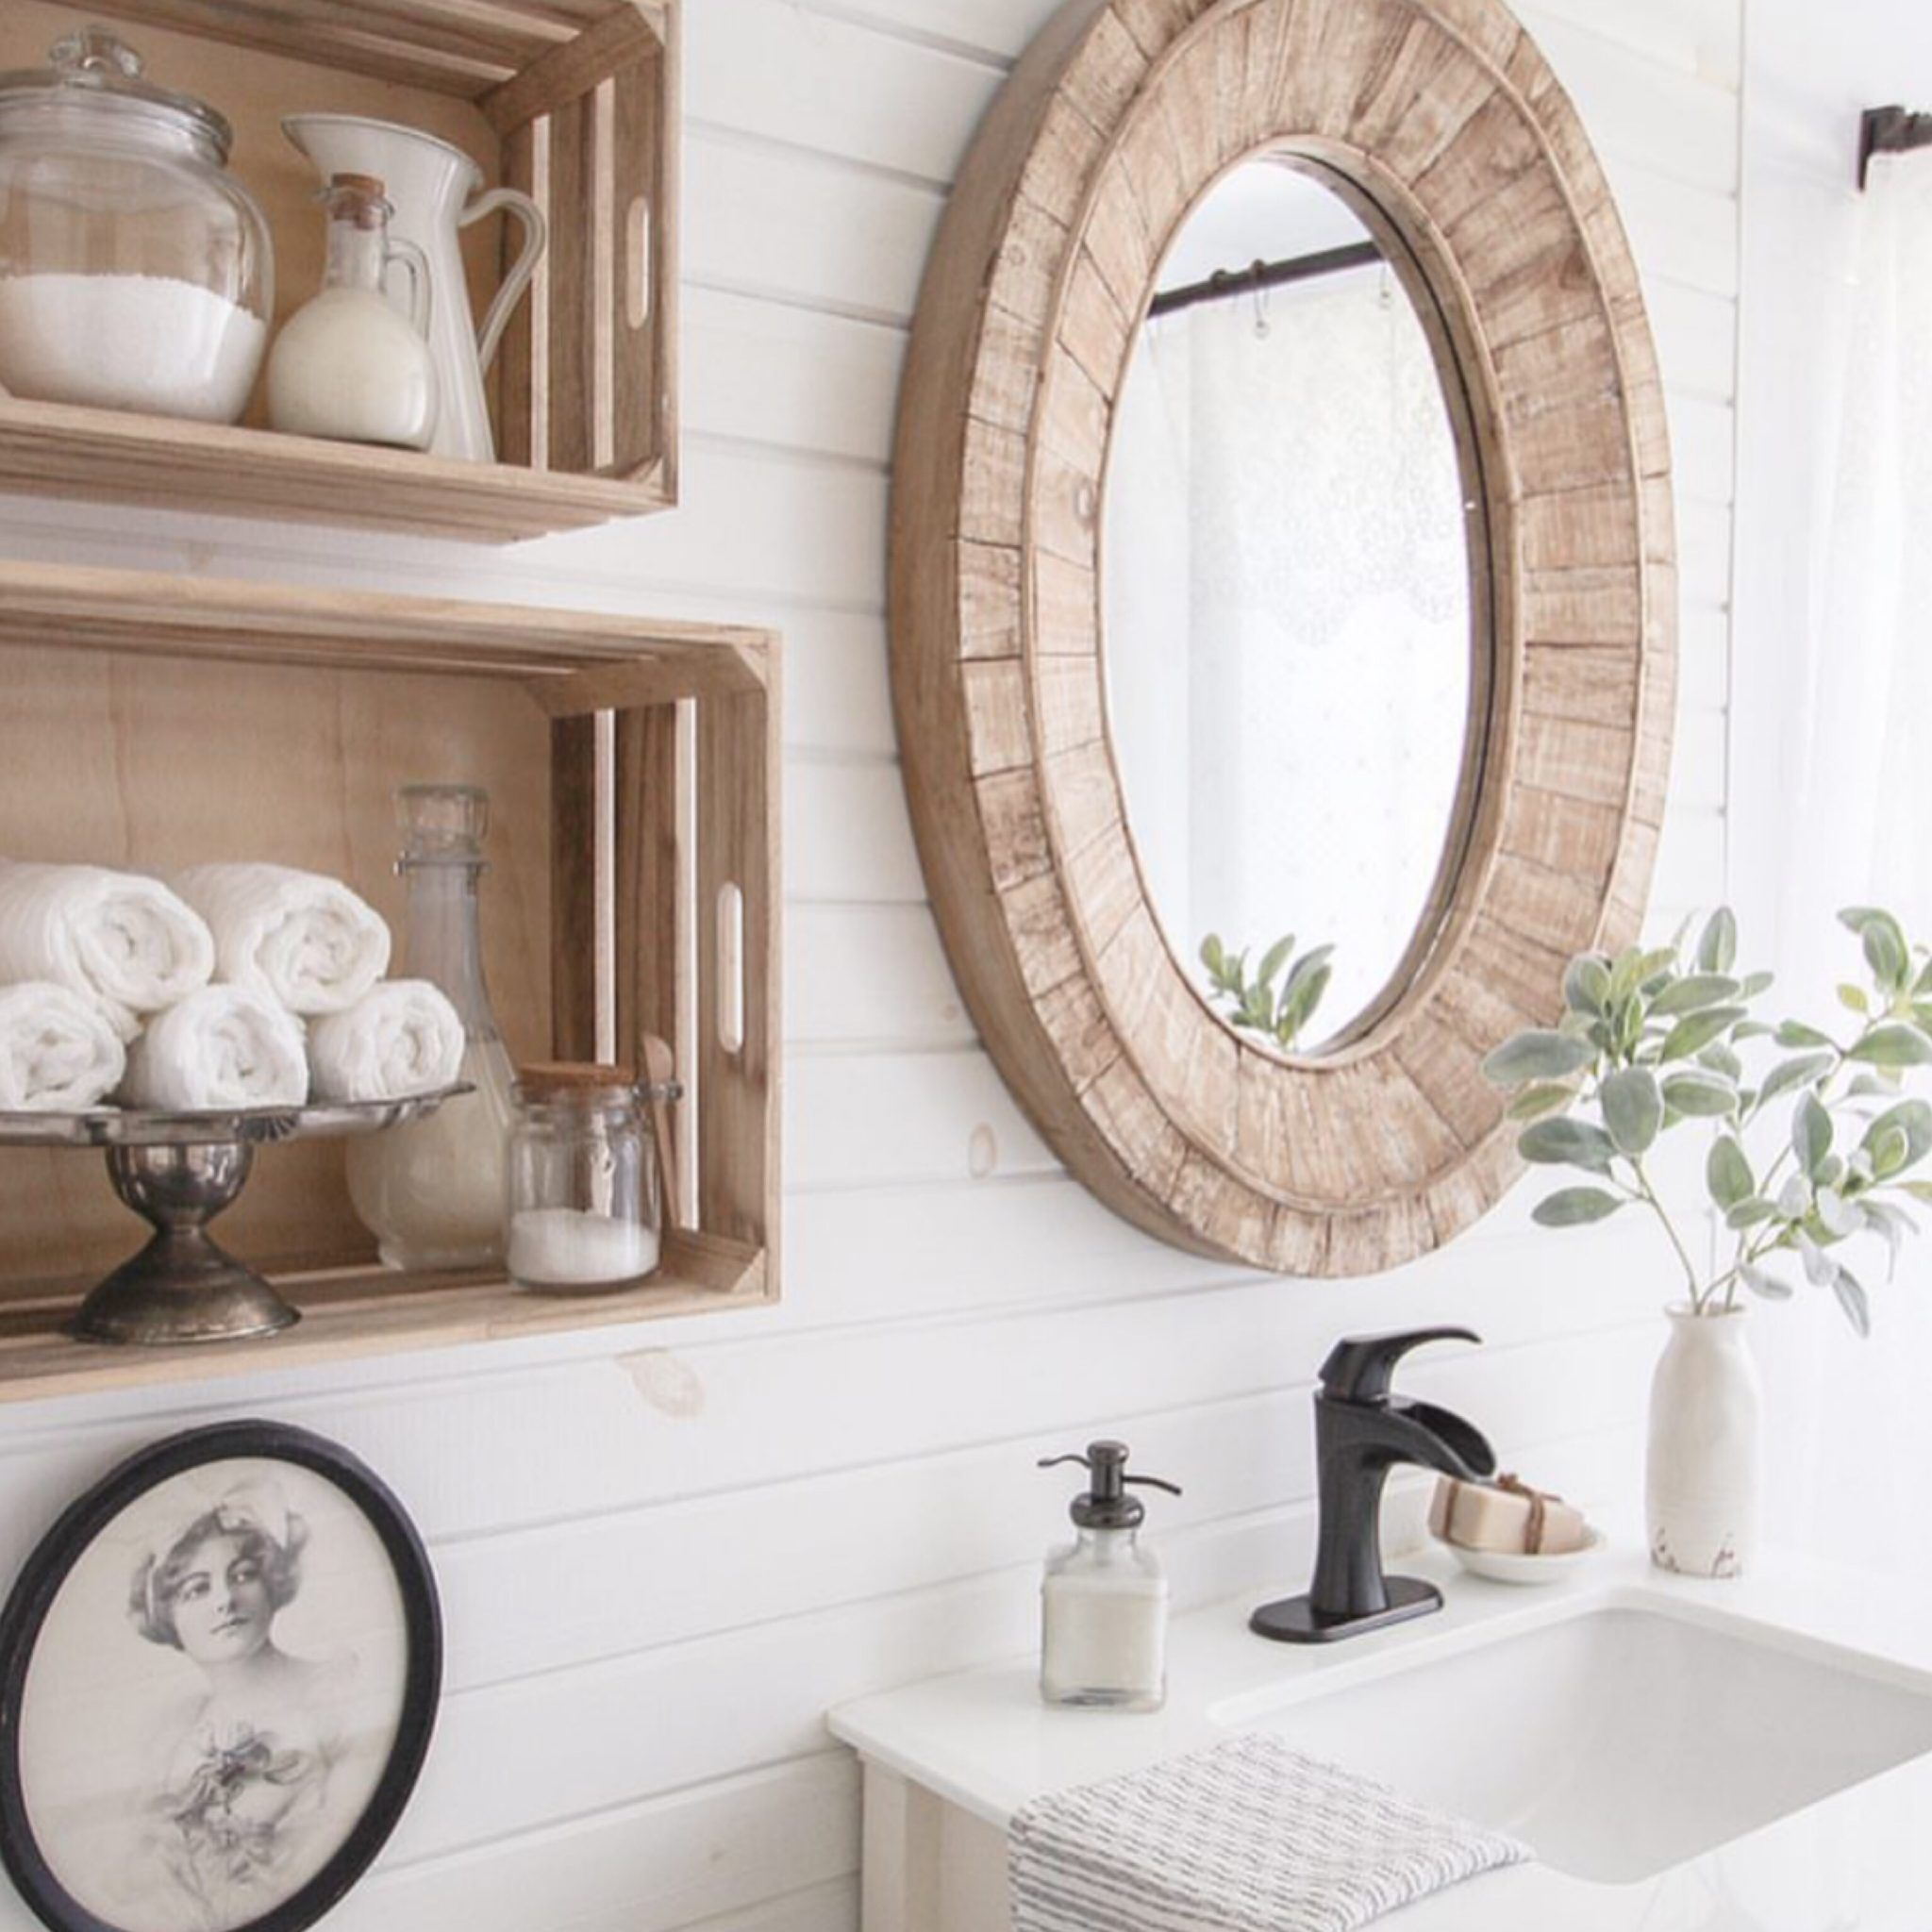 40 Of The BEST Home Decor Blogs That Will Inspire You